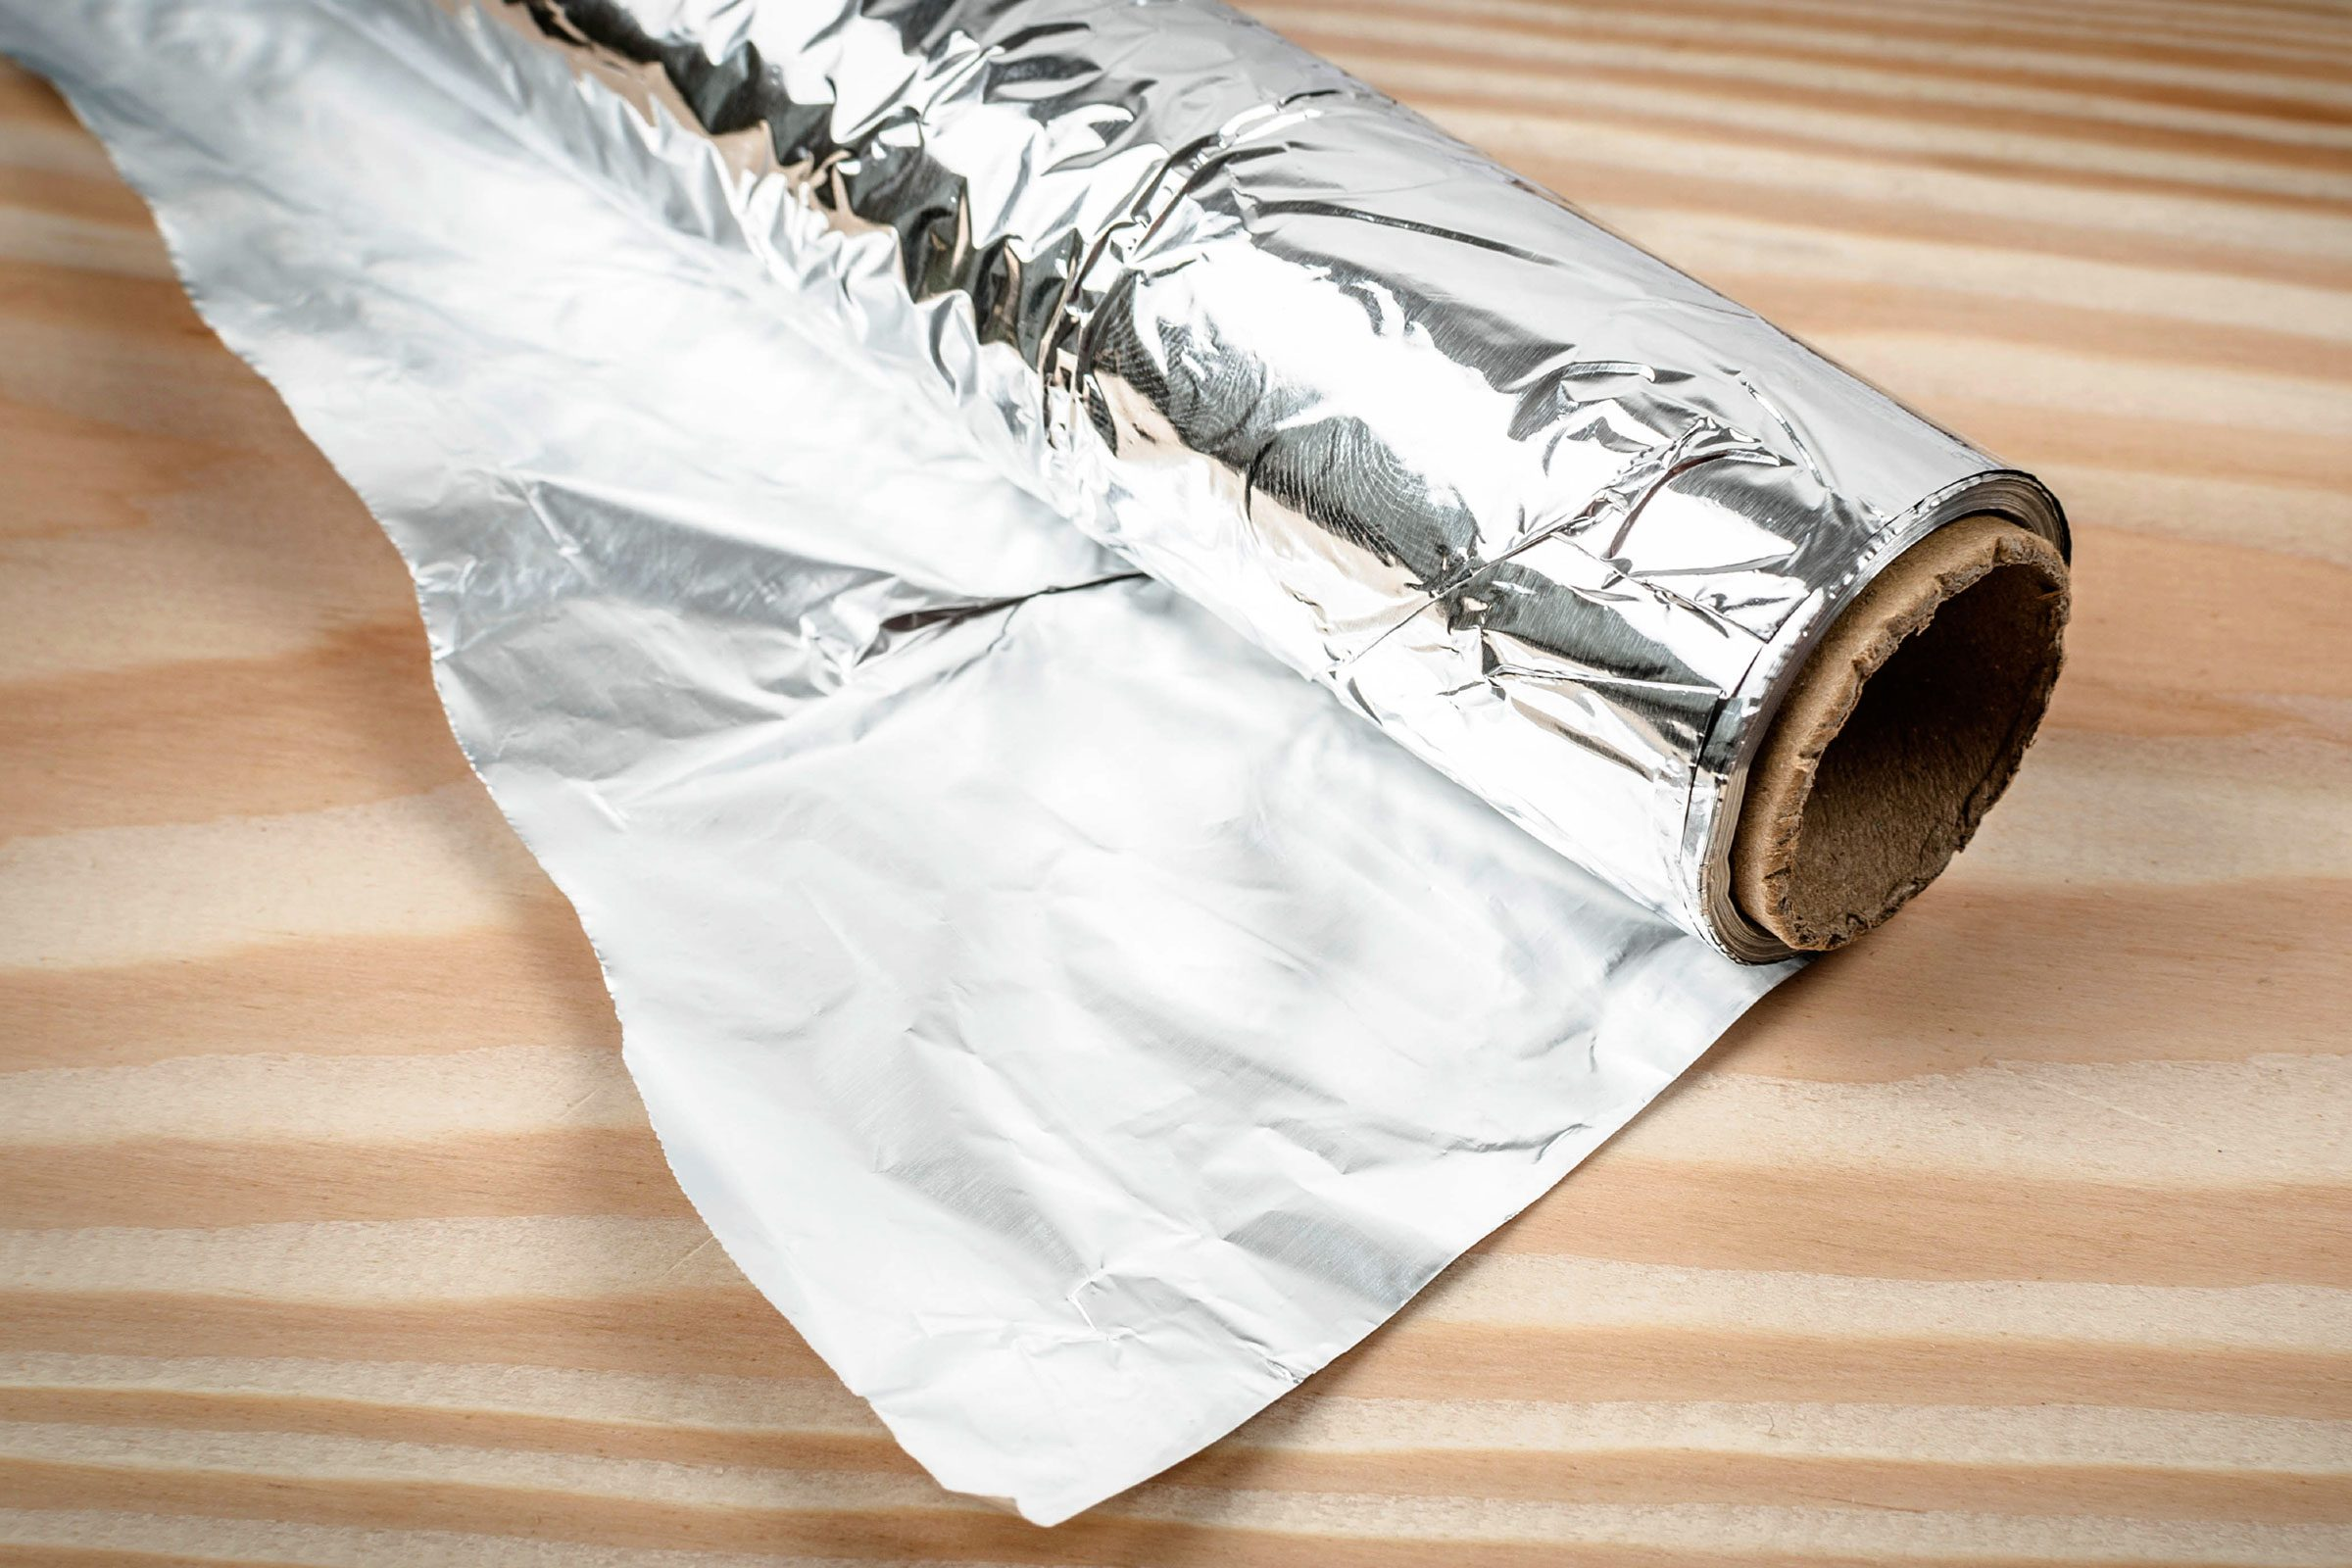 Aluminum foil deters insects